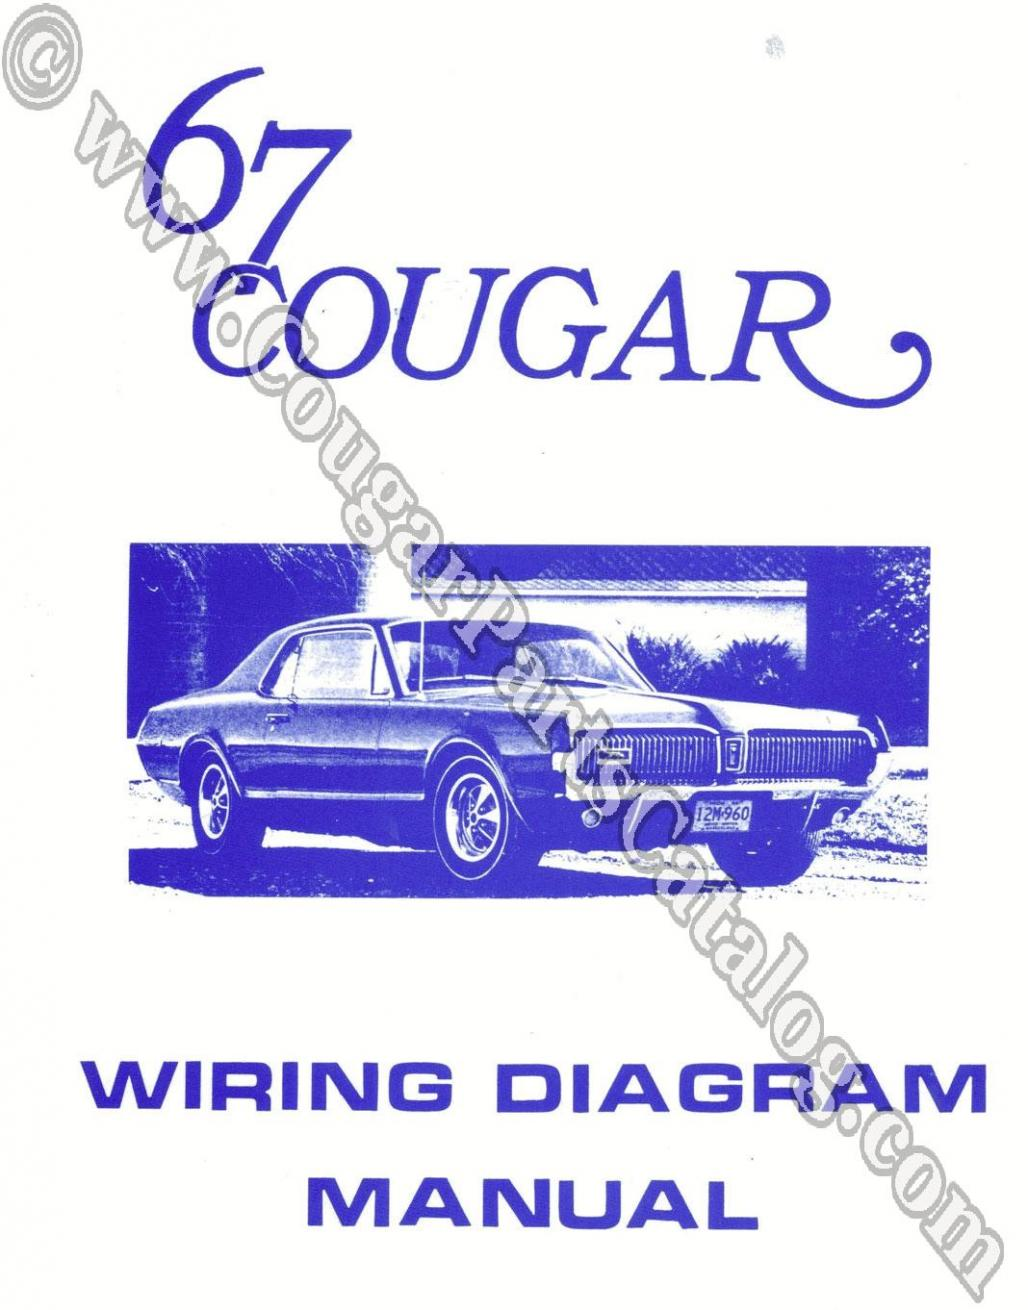 hight resolution of manual wiring diagram repro 1967 mercury cougar 1967 mercury rh secure cougarpartscatalog com